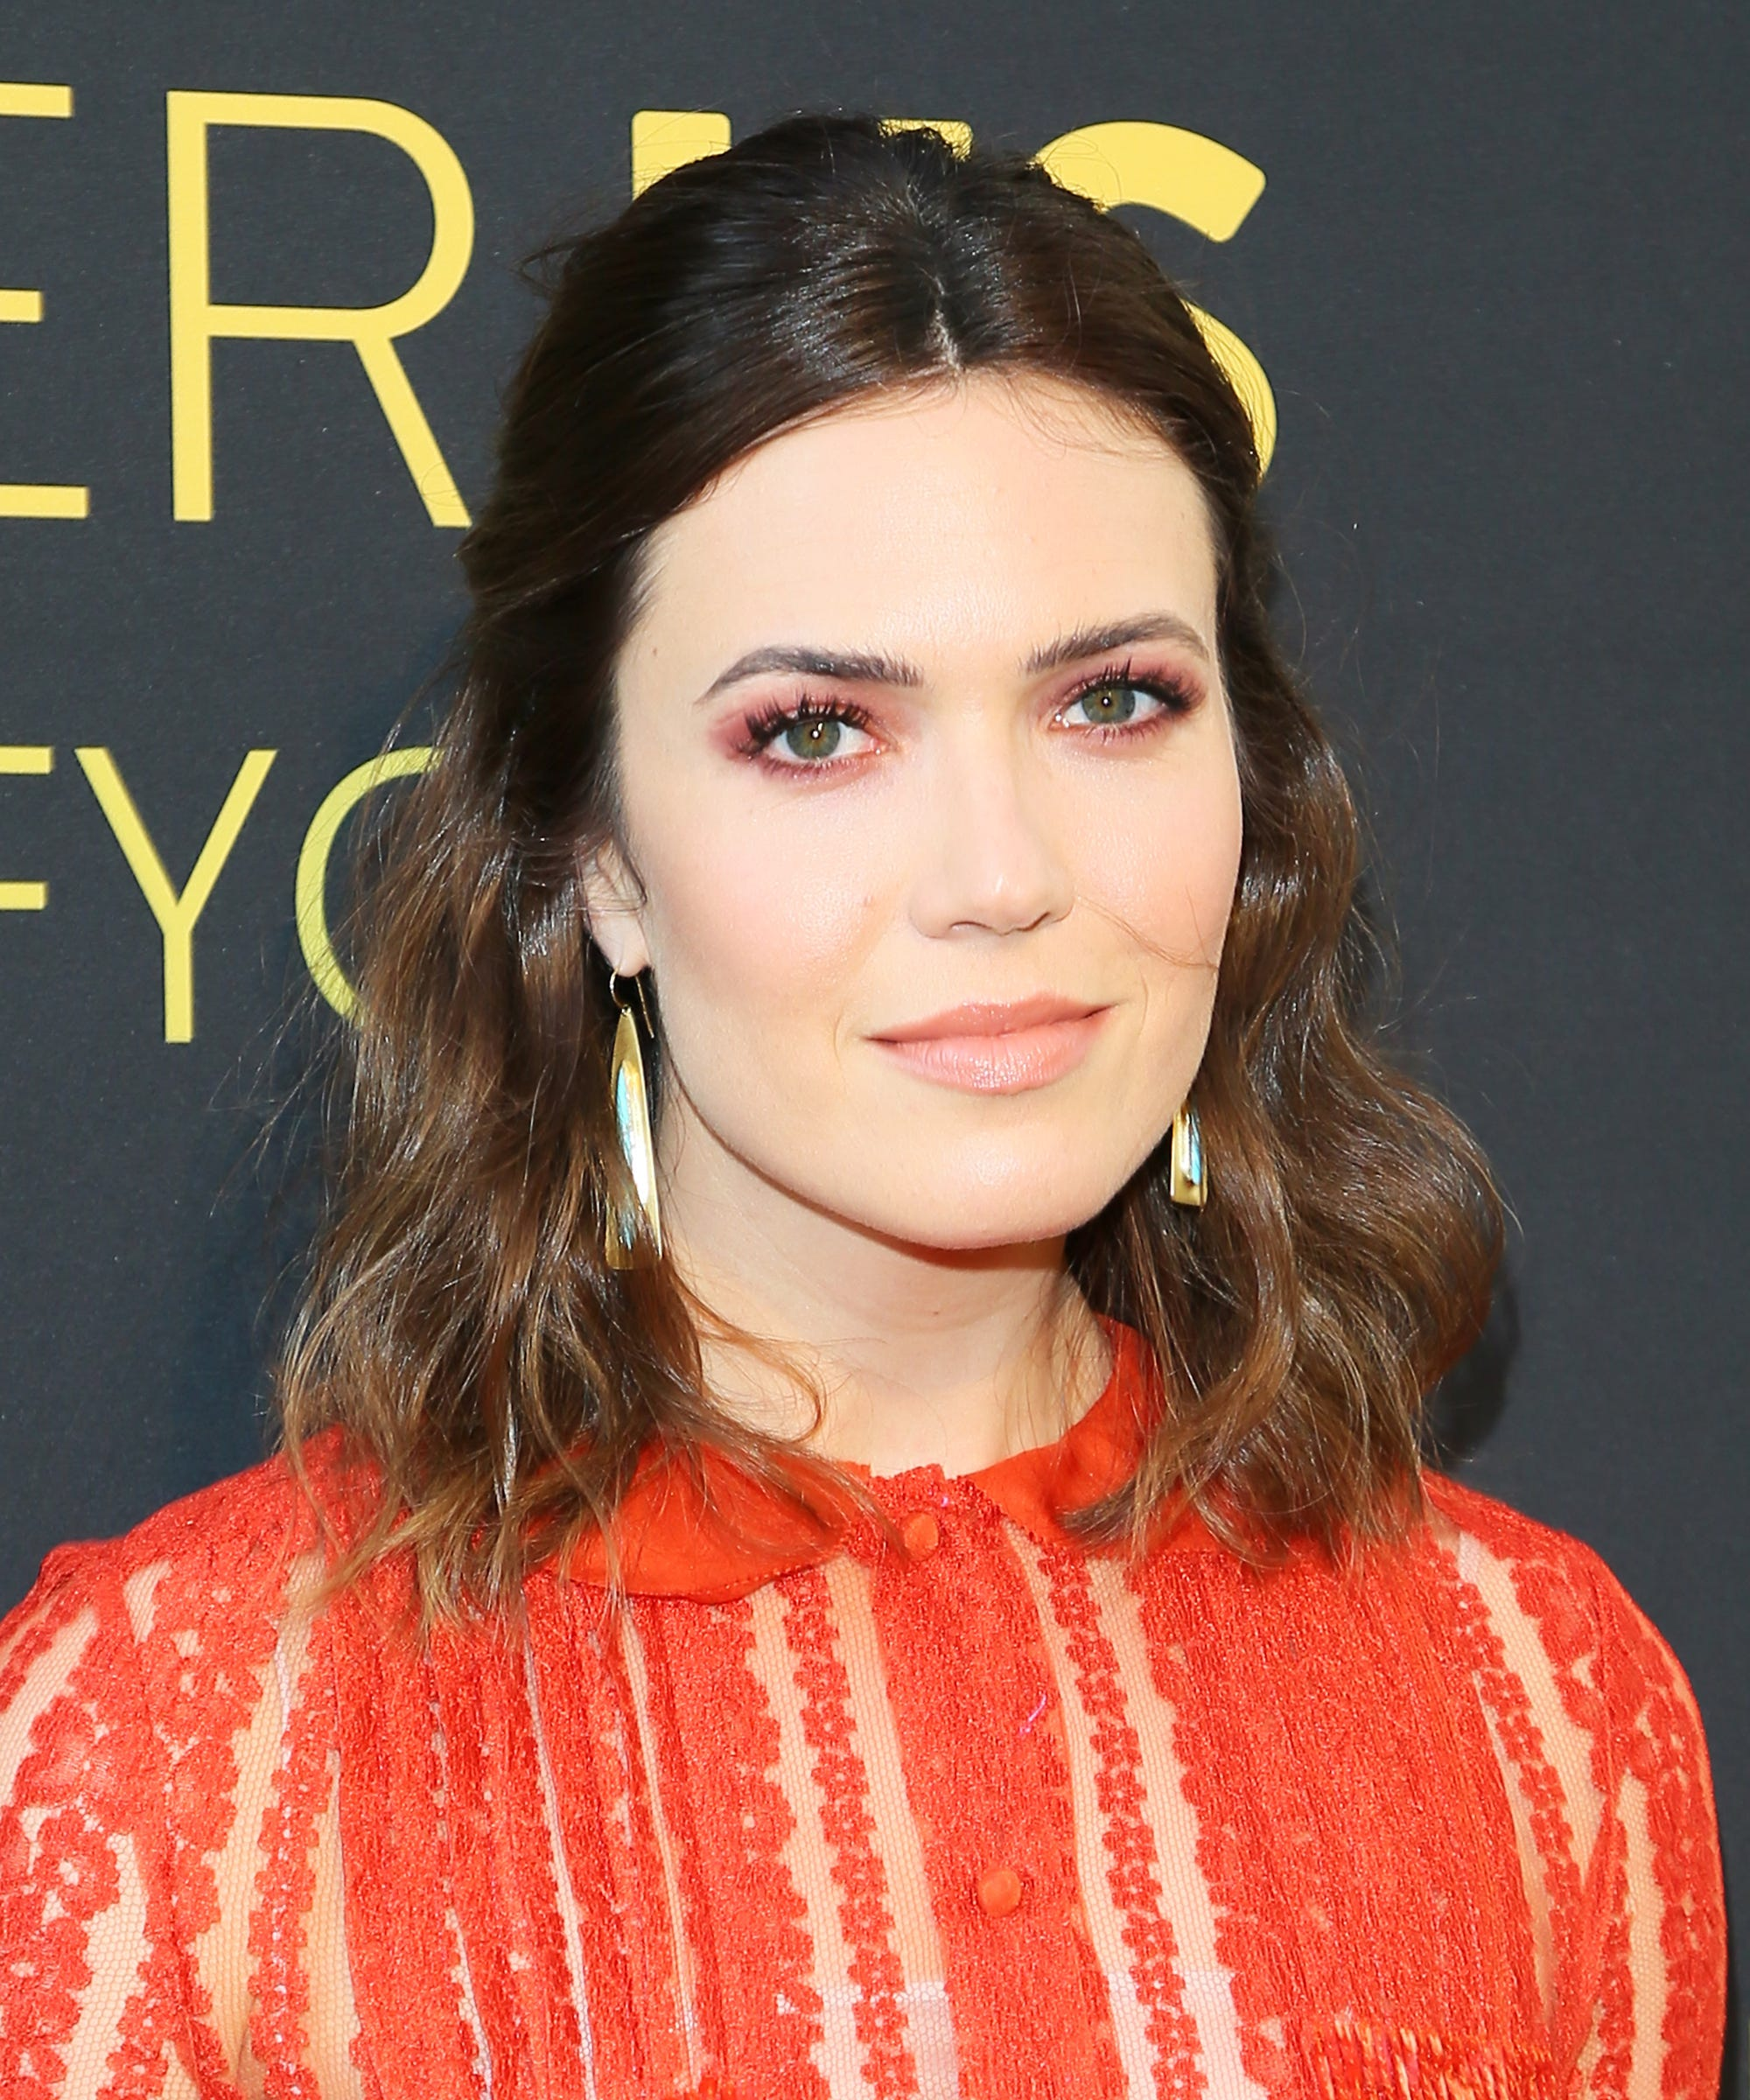 Mandy moore hair makeup trends looks over the years baditri Image collections